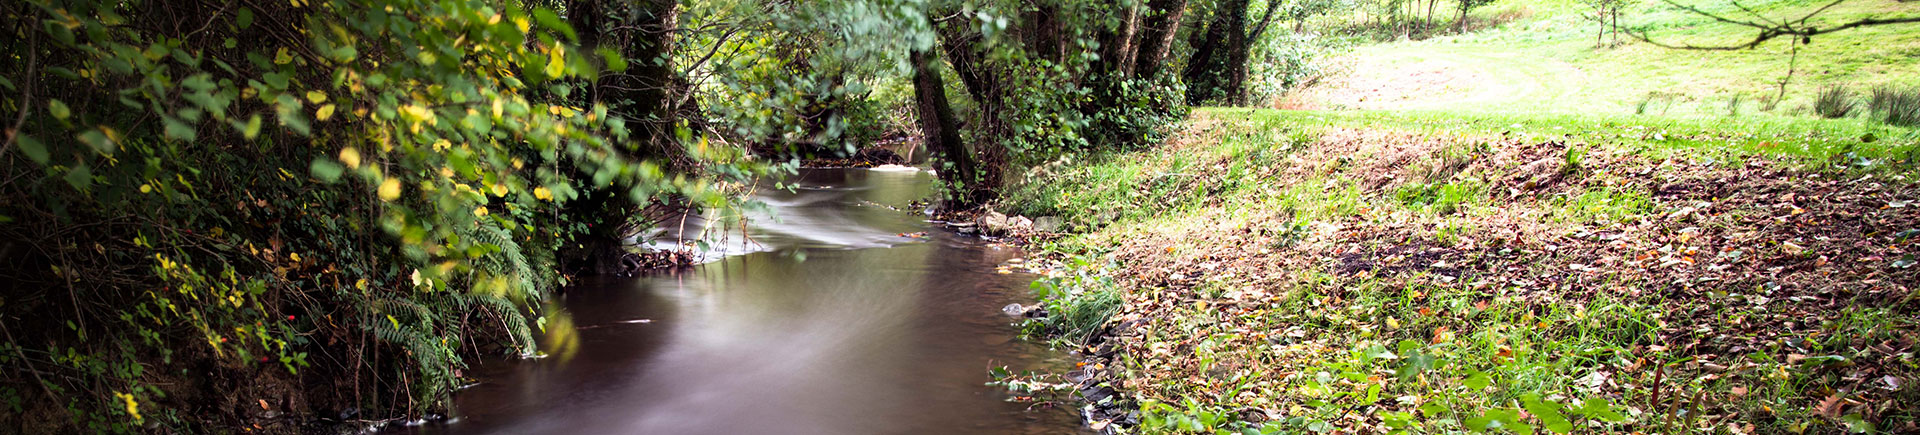 A dramatic stream depicting environmental effects, close to Acres Insurance Brokers head office